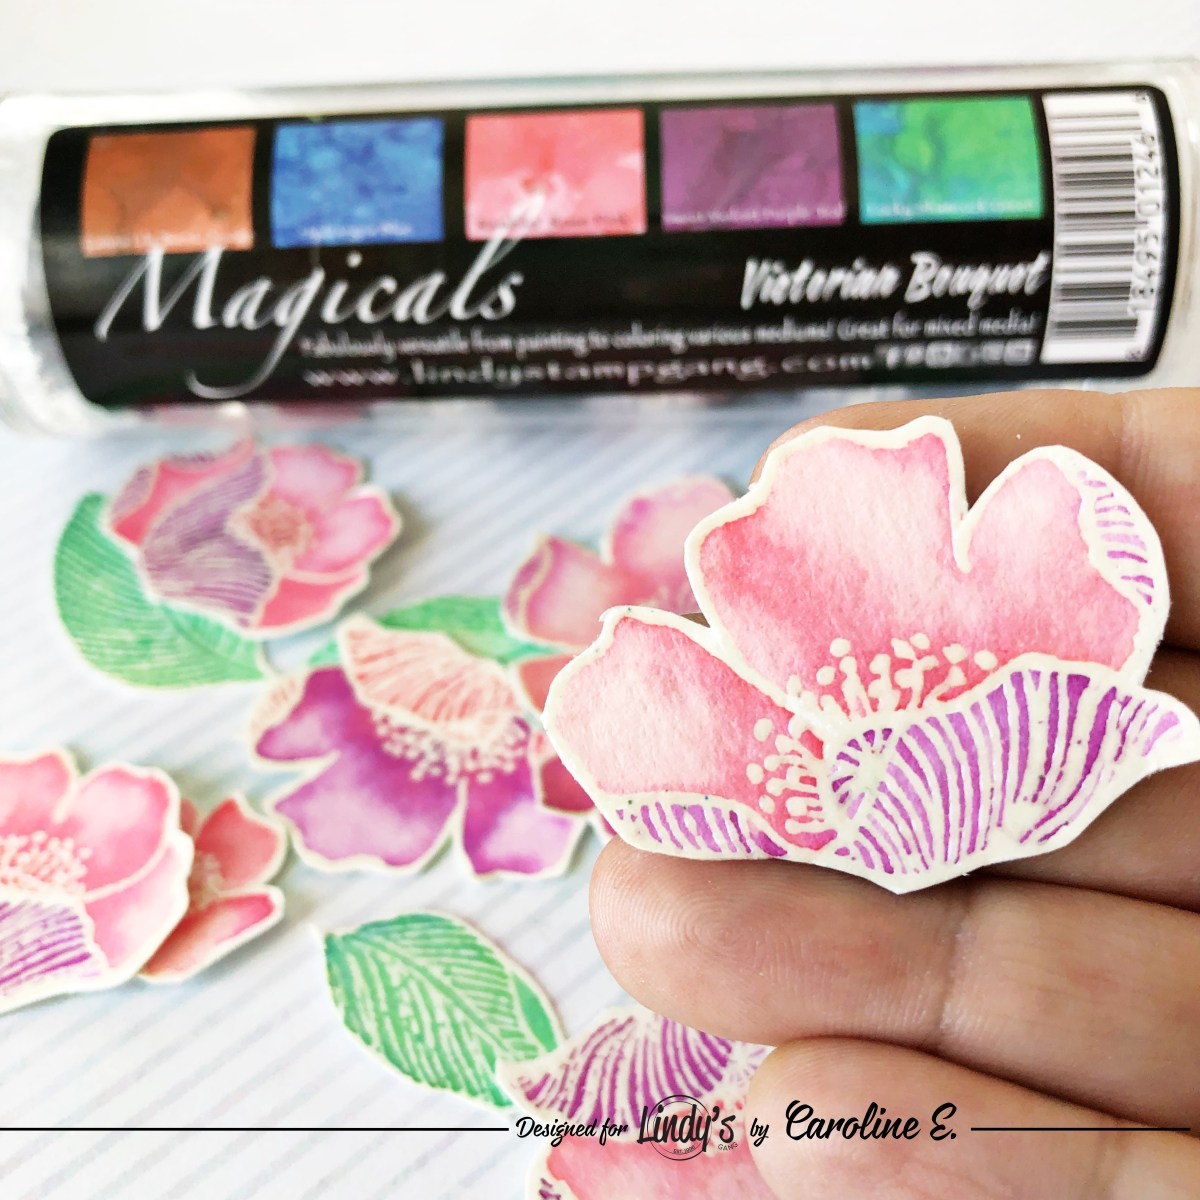 Stamp Coloring using Magical Powders with Caroline